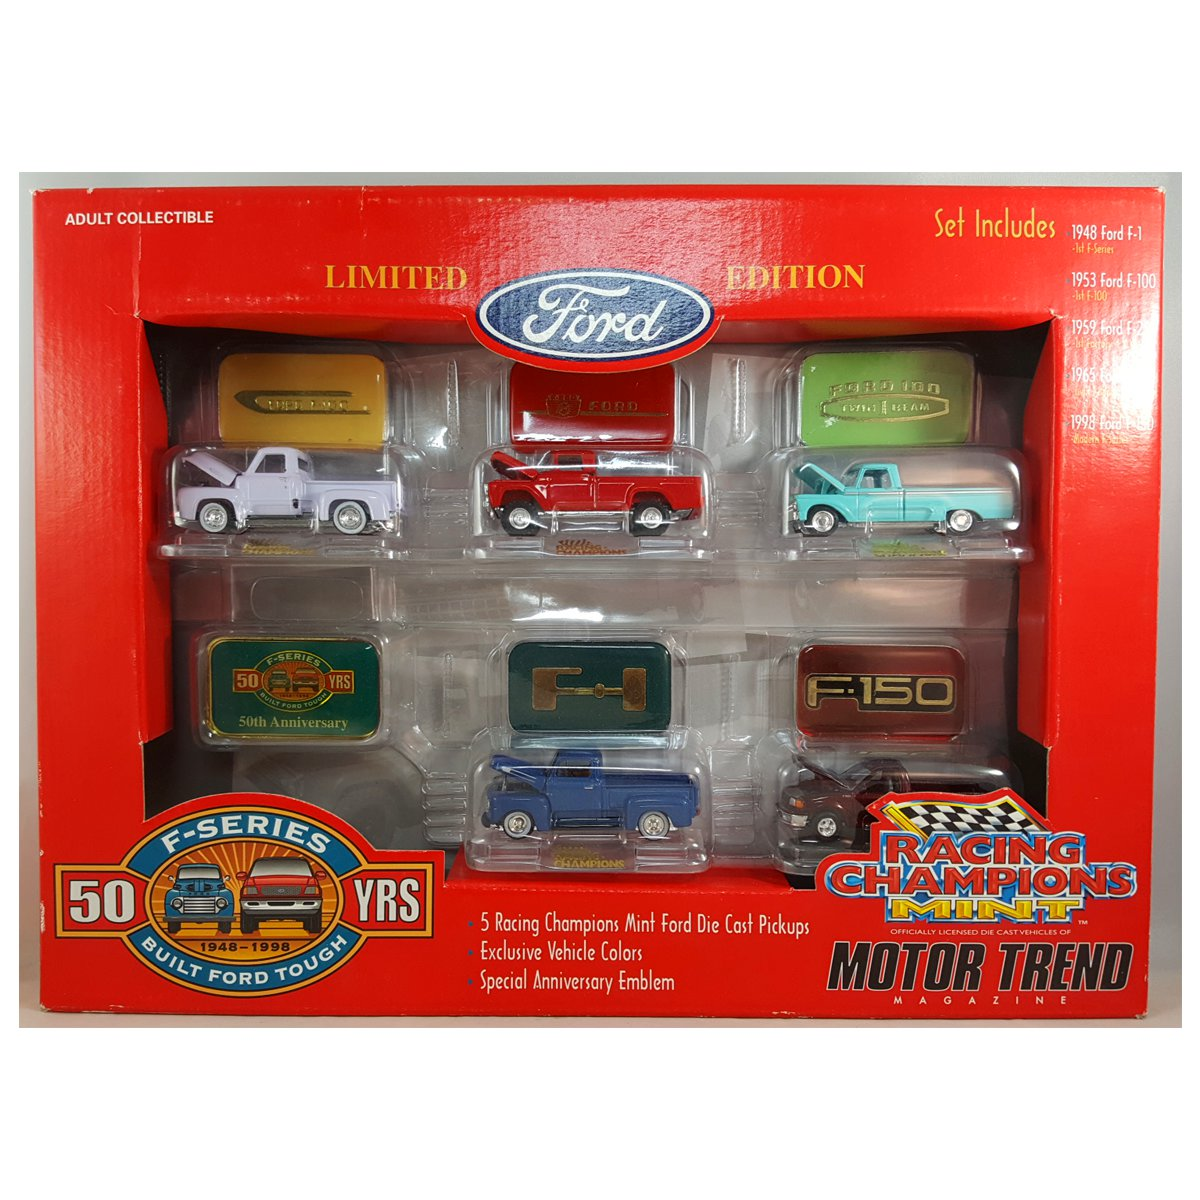 1998 Racing Champions Mint Motor Trend Magazine 50 Years Ford F-Series 1948-1998 Set of 5 Die Cast Pickup... by Racing Champions, Inc.